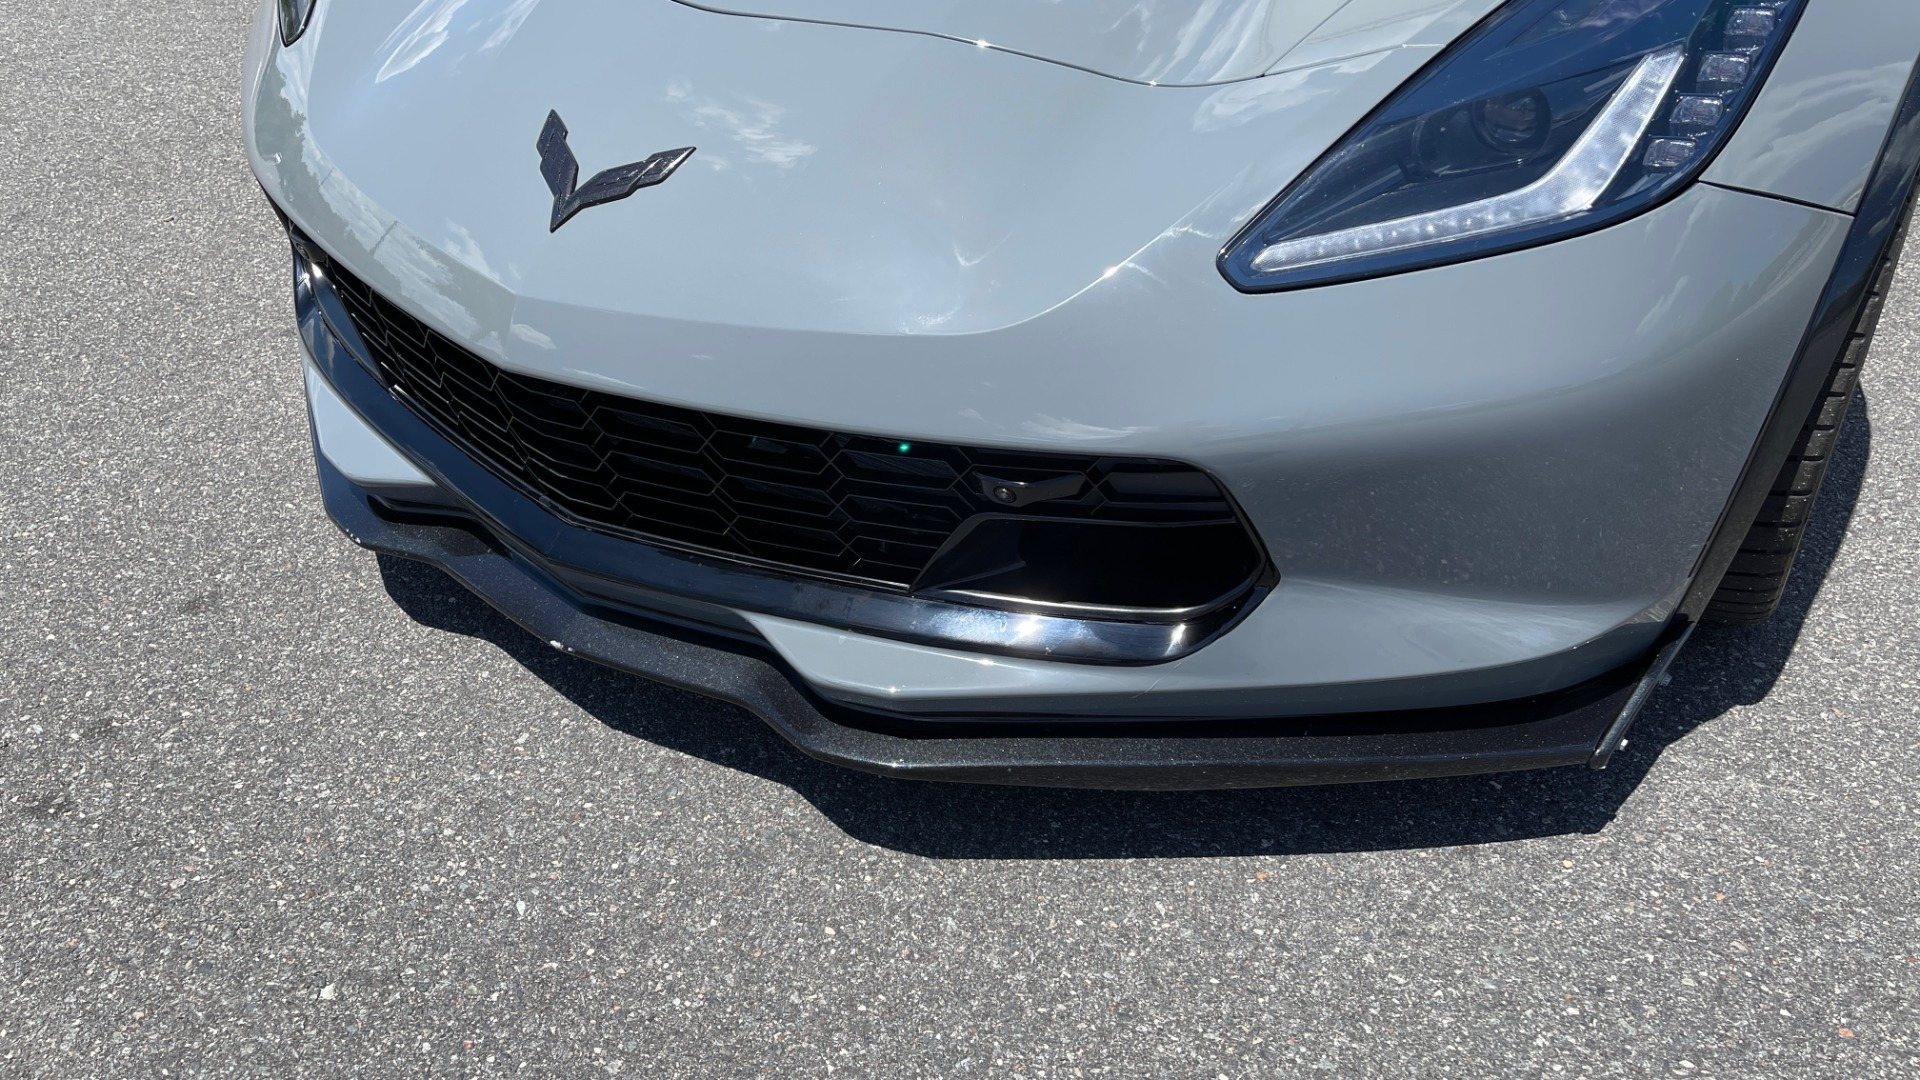 Used 2019 Chevrolet CORVETTE GRAND SPORT 3LT / SUPERCHARGED 6.2L V8 / NAV / REARVIEW for sale Sold at Formula Imports in Charlotte NC 28227 20